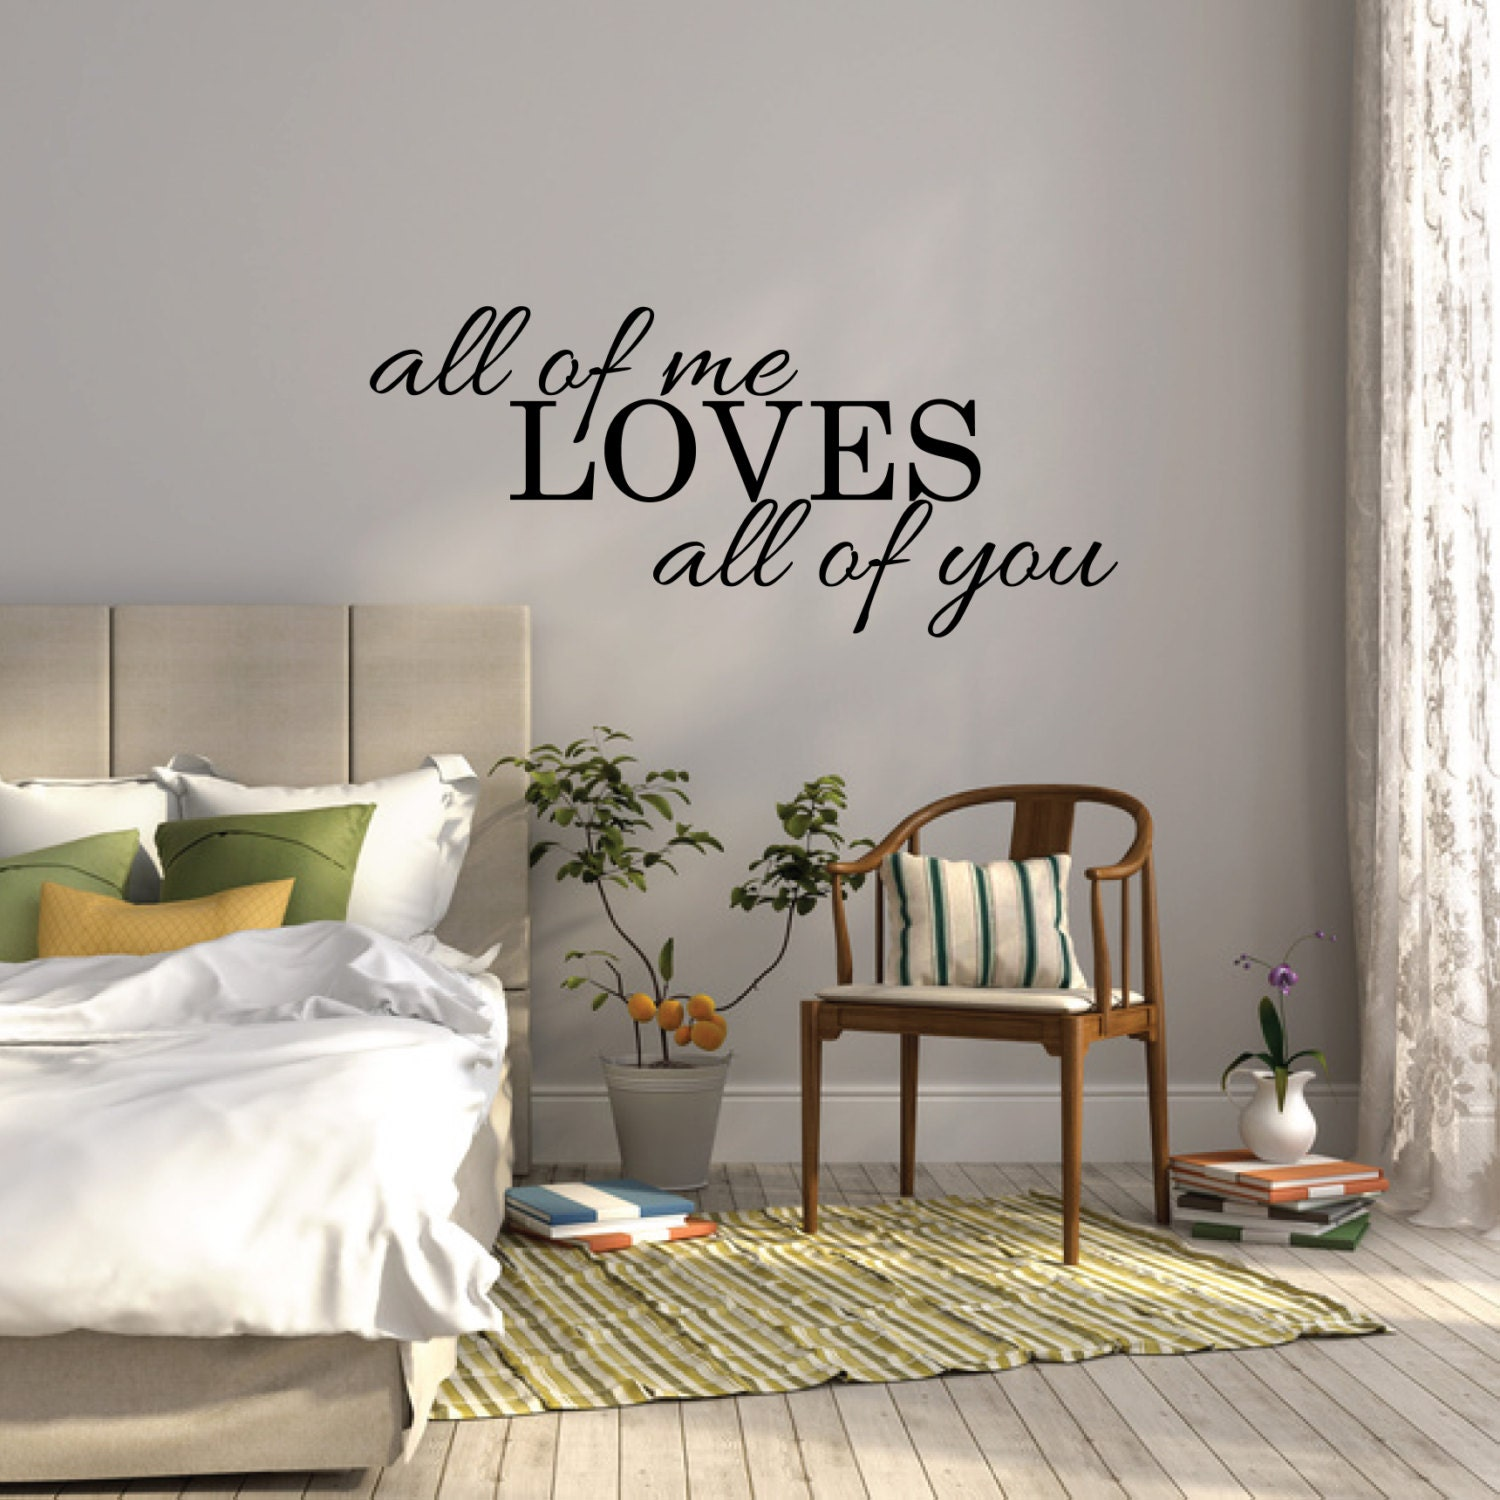 All of me loves all of you wall sticker bedroom wall decal for Bedroom wall decals